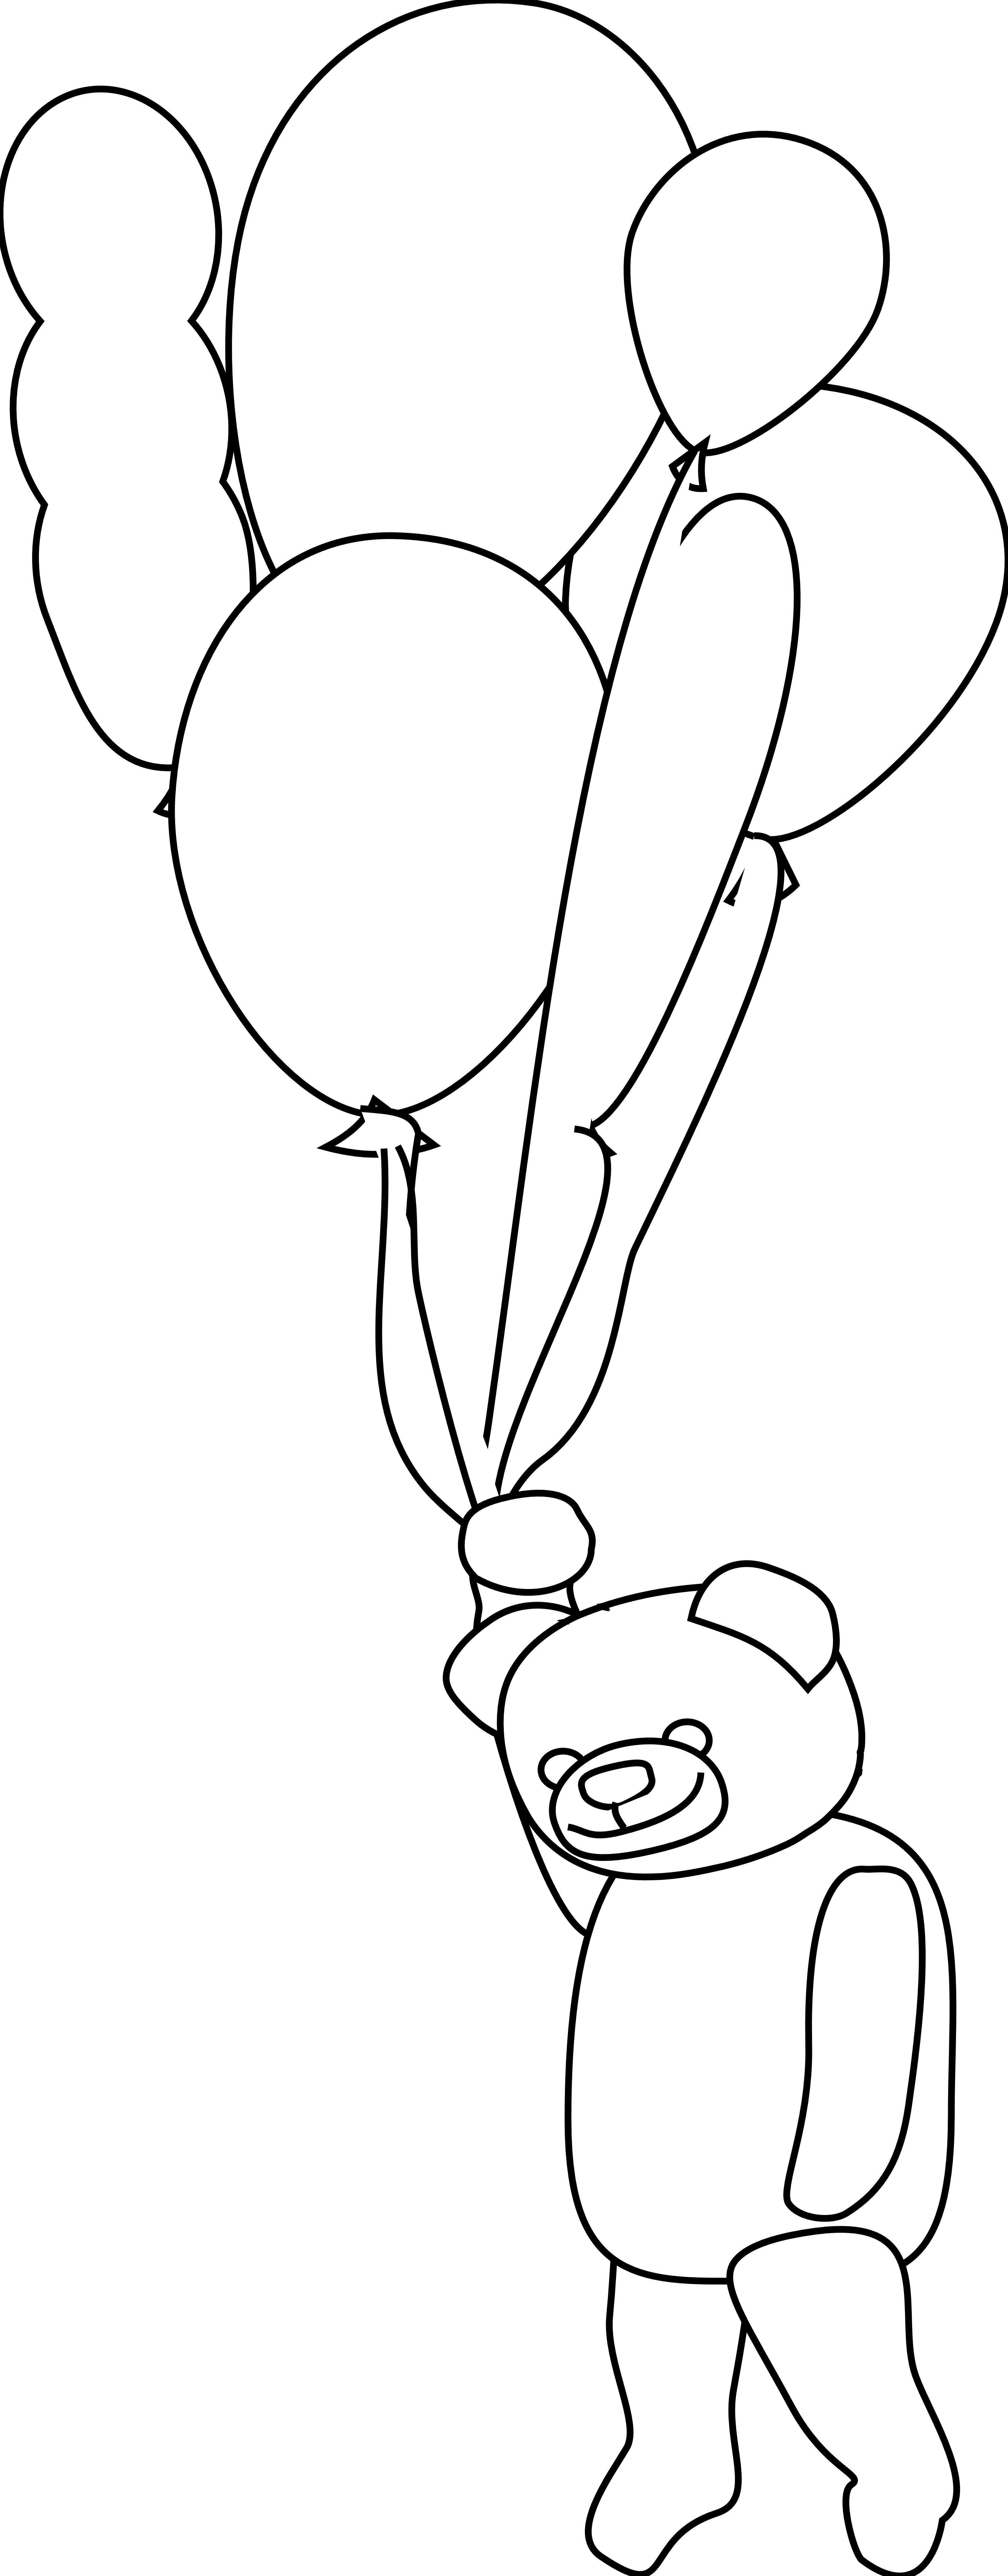 Clip Art Teddy Bear With Balloons Black White